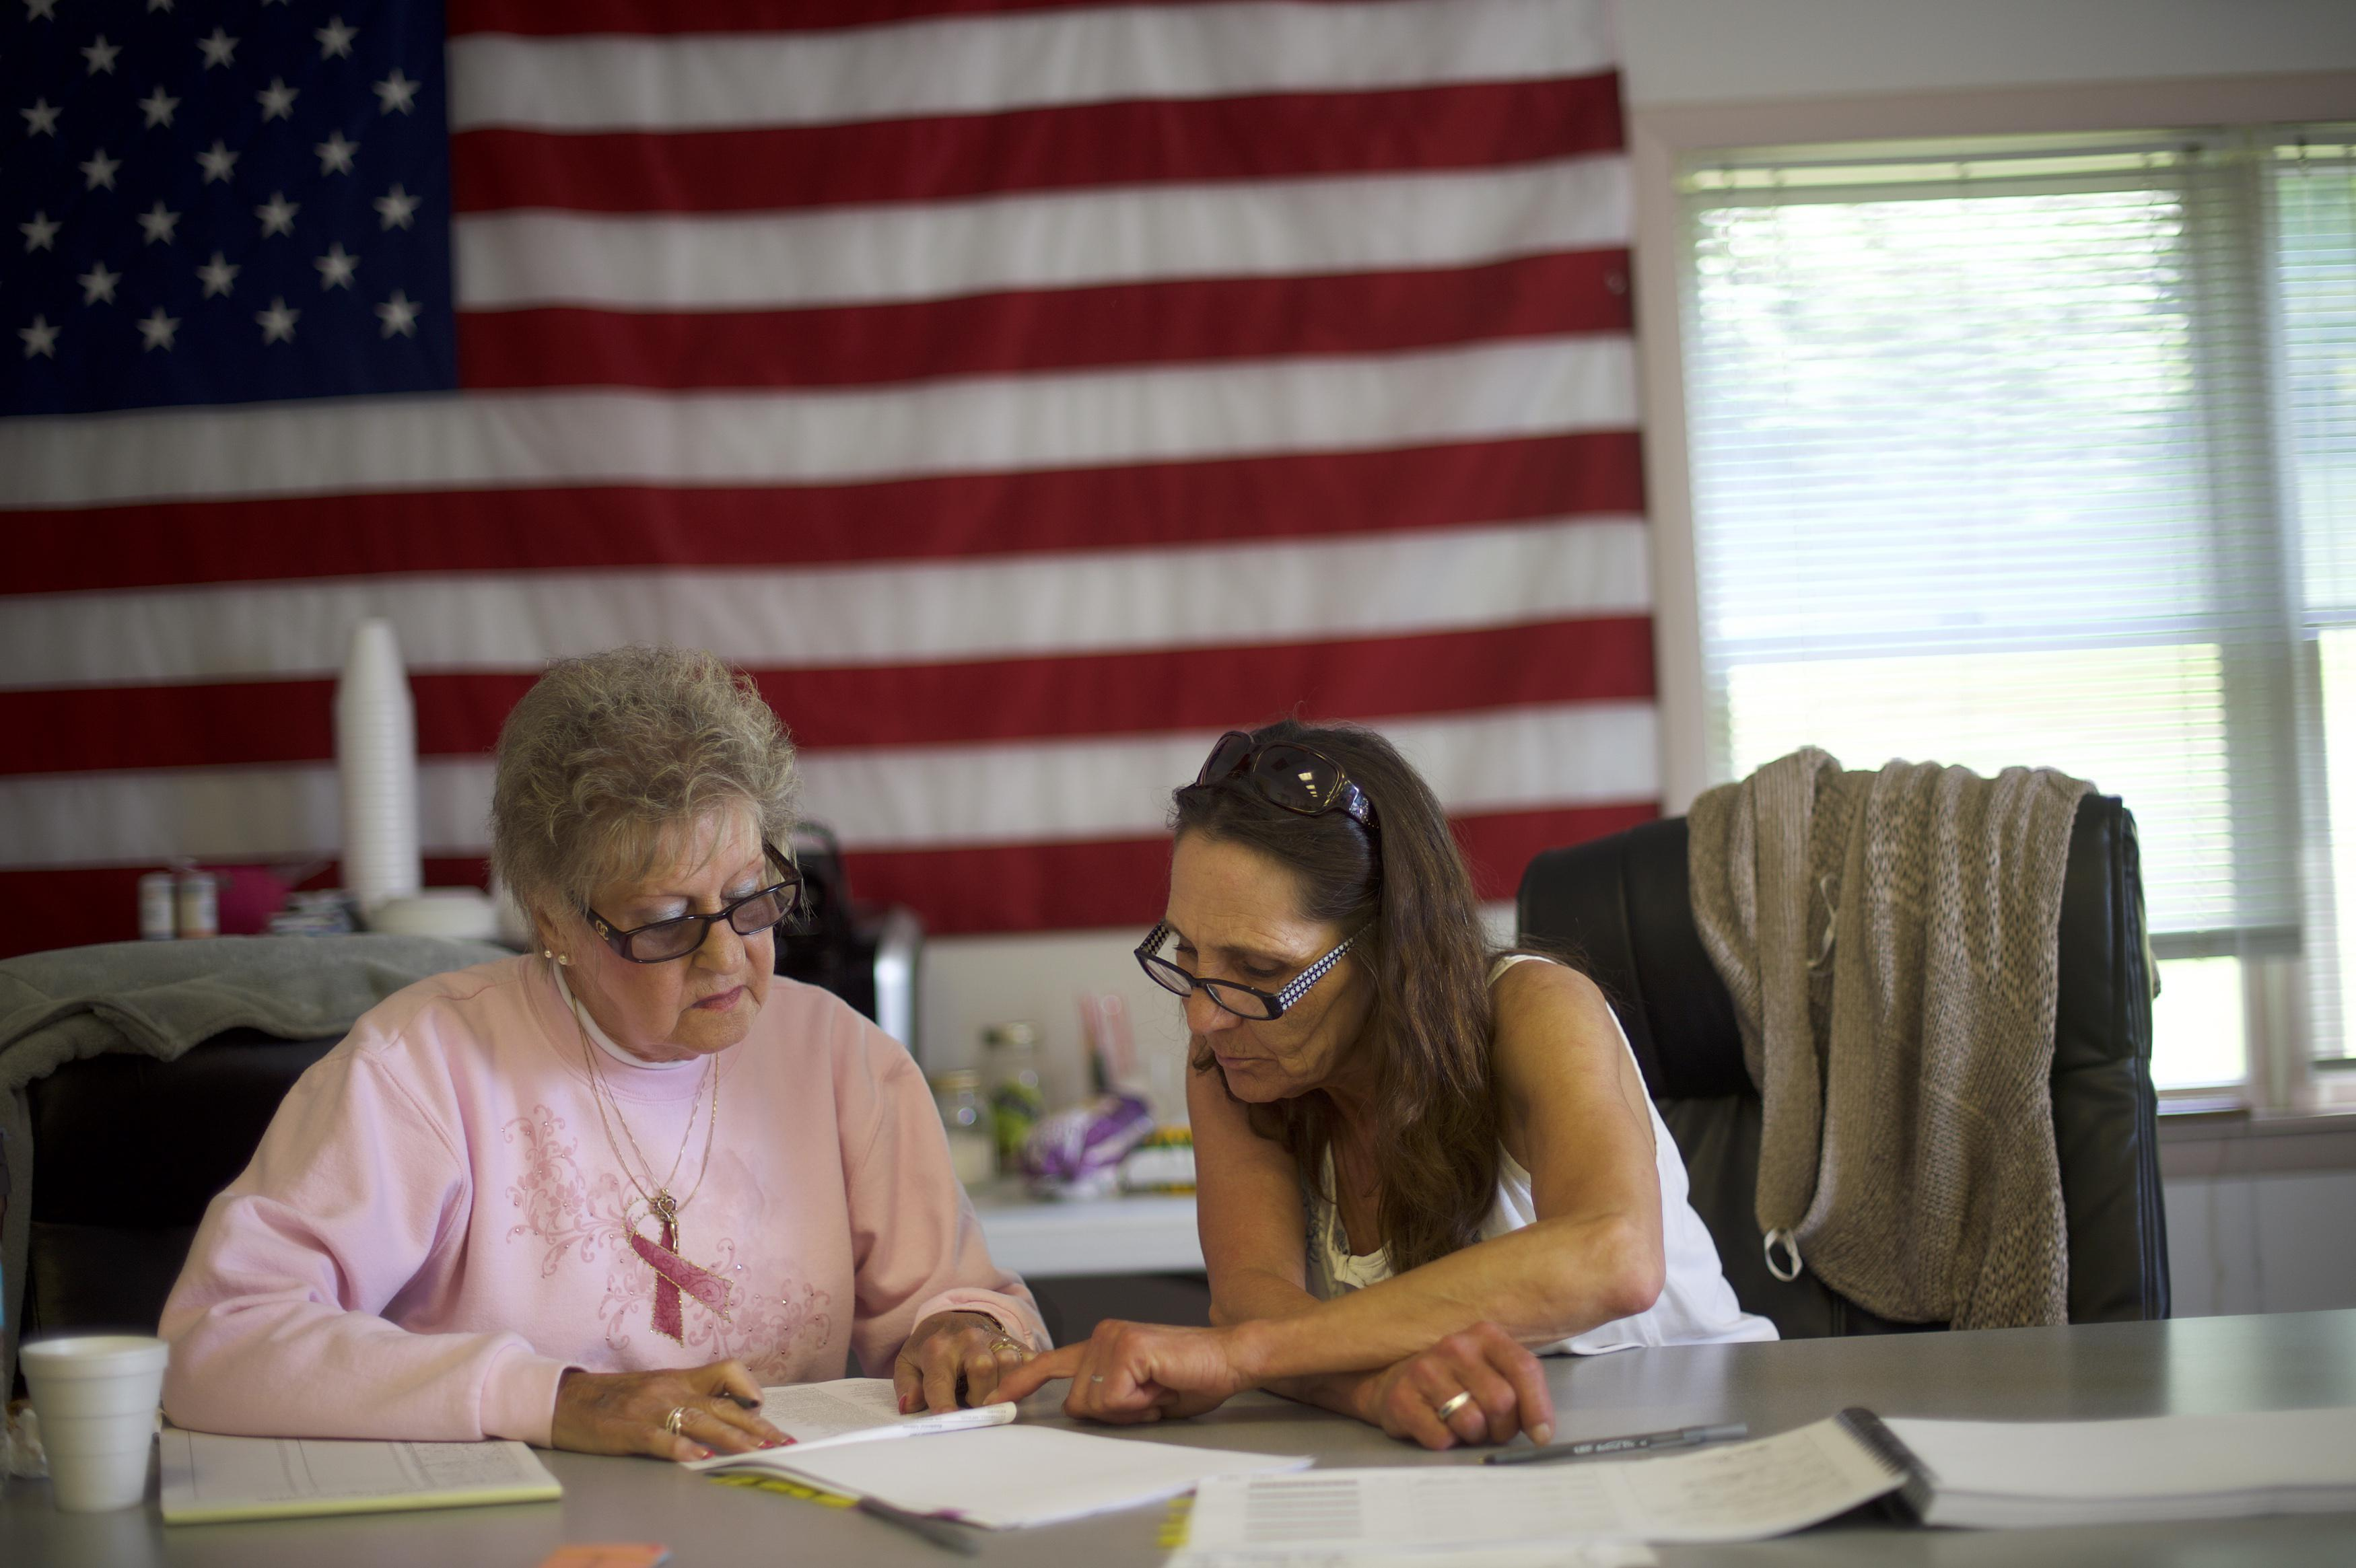 MOCANAQUA, PA - MAY 15:  Election officials (L-R) Barbara Kubasek and Darcie Lapinski confer at the Conyngham Township Municipal Building polling station during the 2018 Pennsylvania Primary Election on May 15, 2018 in Mocanaqua, Pennsylvania.  In the second major May primary day nationwide, four states go to the polls: Idaho, Nebraska, Oregon, and Pennsylvania.  (Photo by Mark Makela/Getty Images)